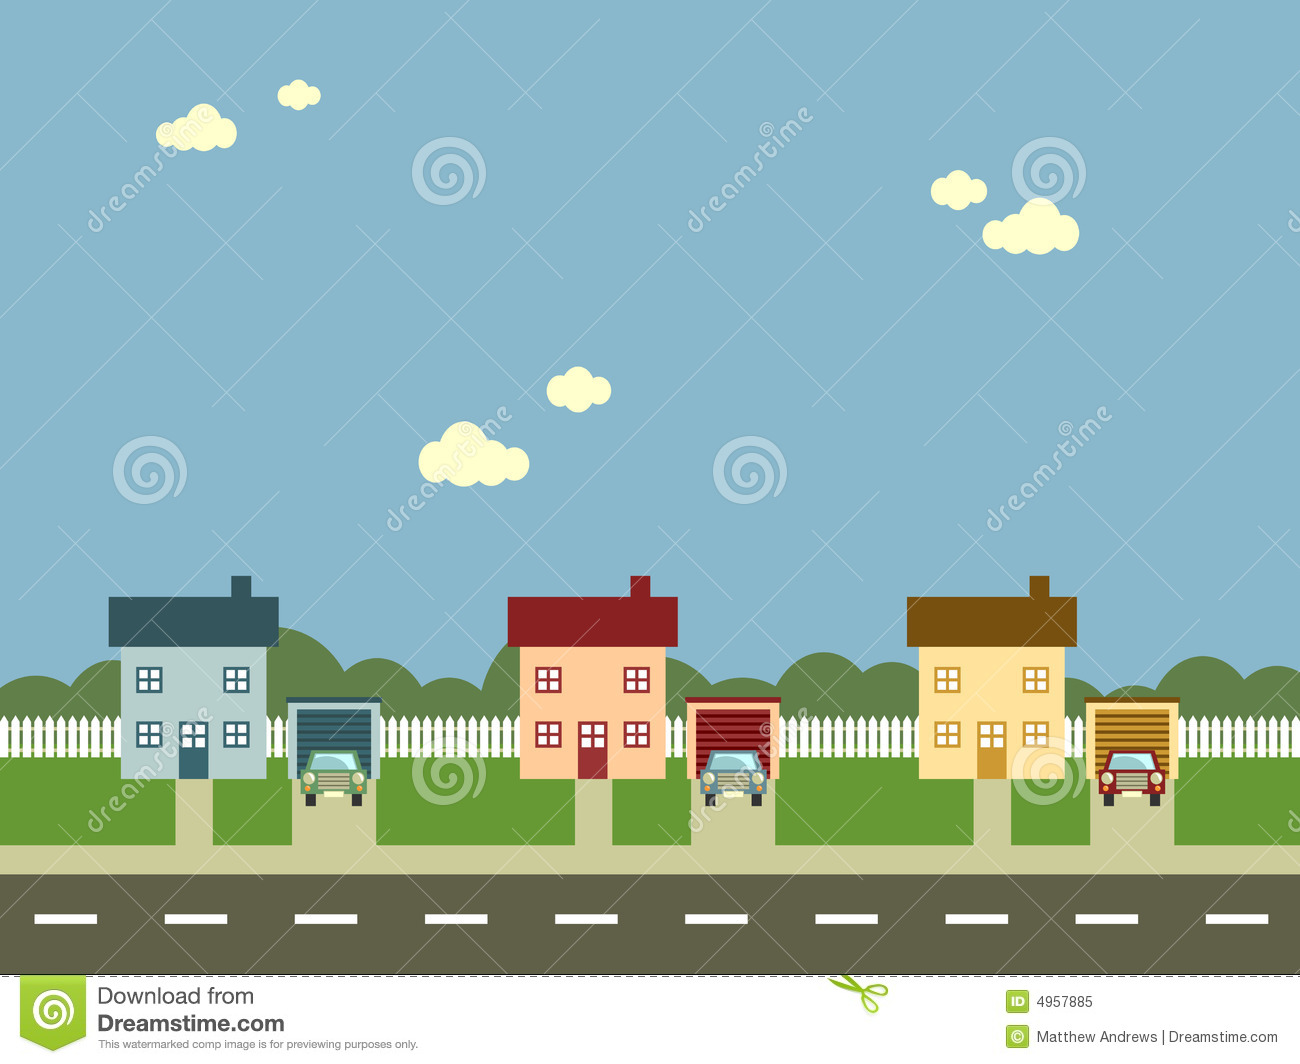 Community clipart housing community Neighborhood Clip Free City Clipart